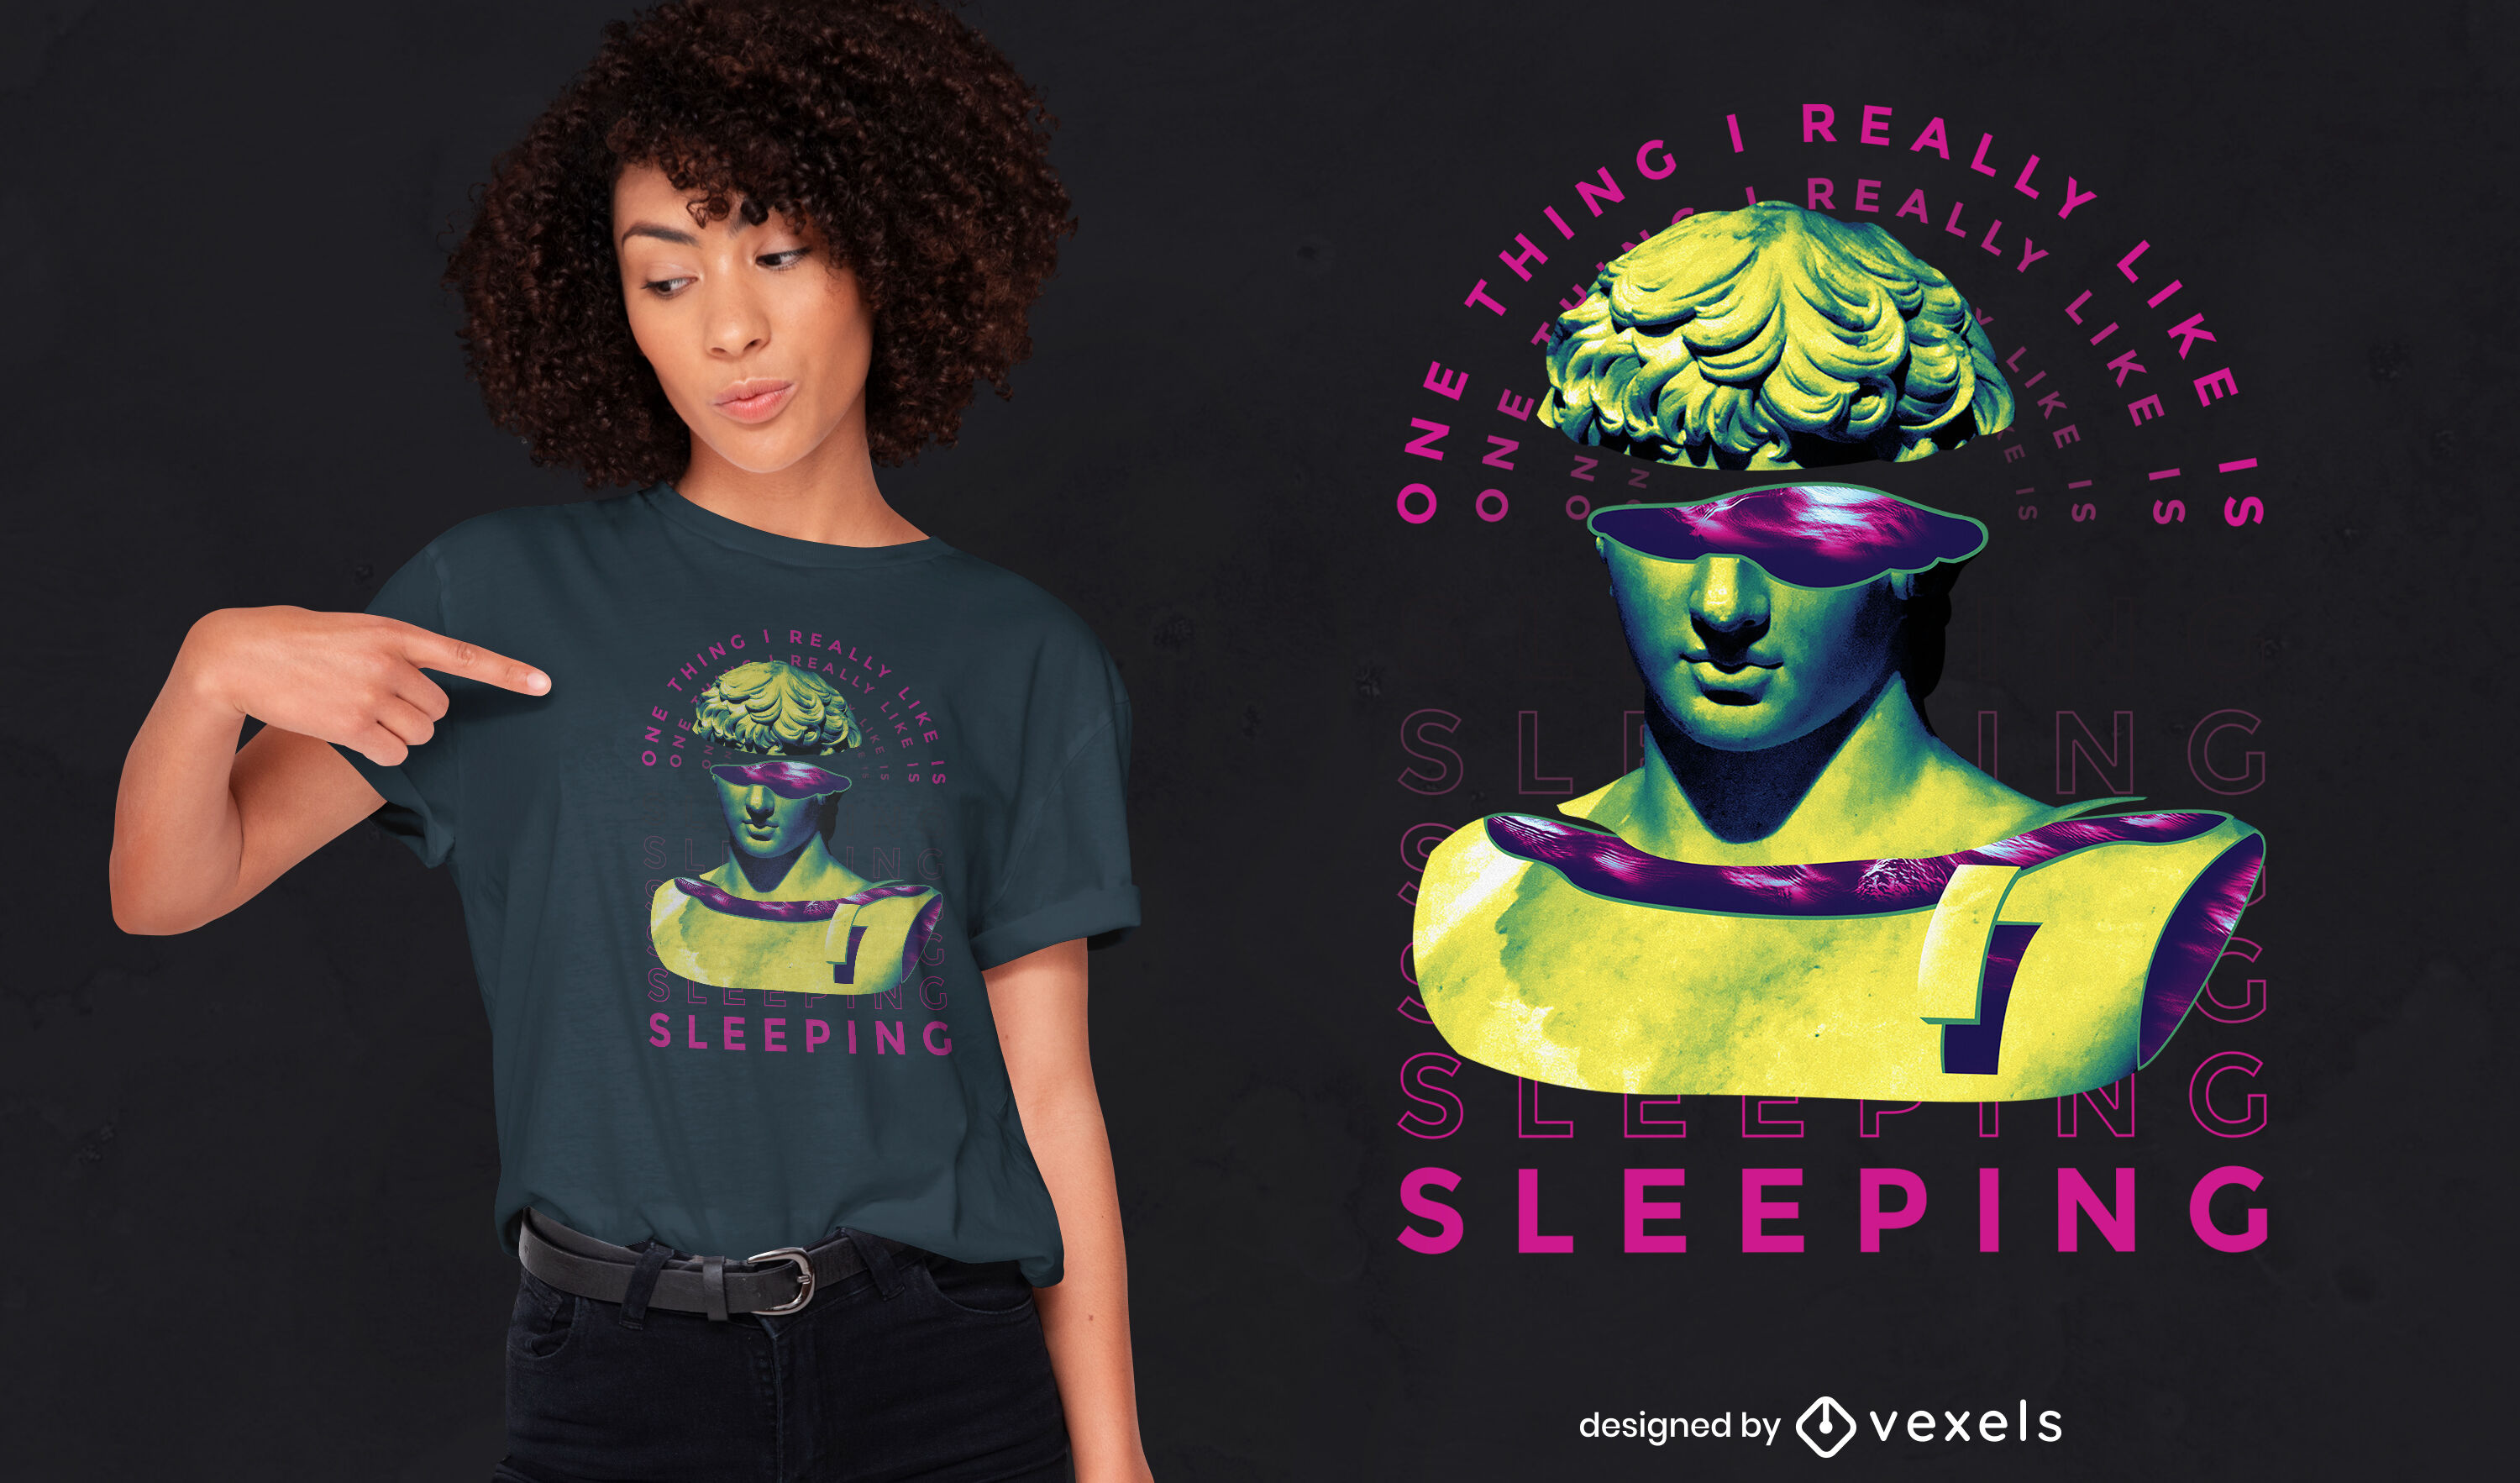 Sleeping edgy quote statue psd t-shirt design